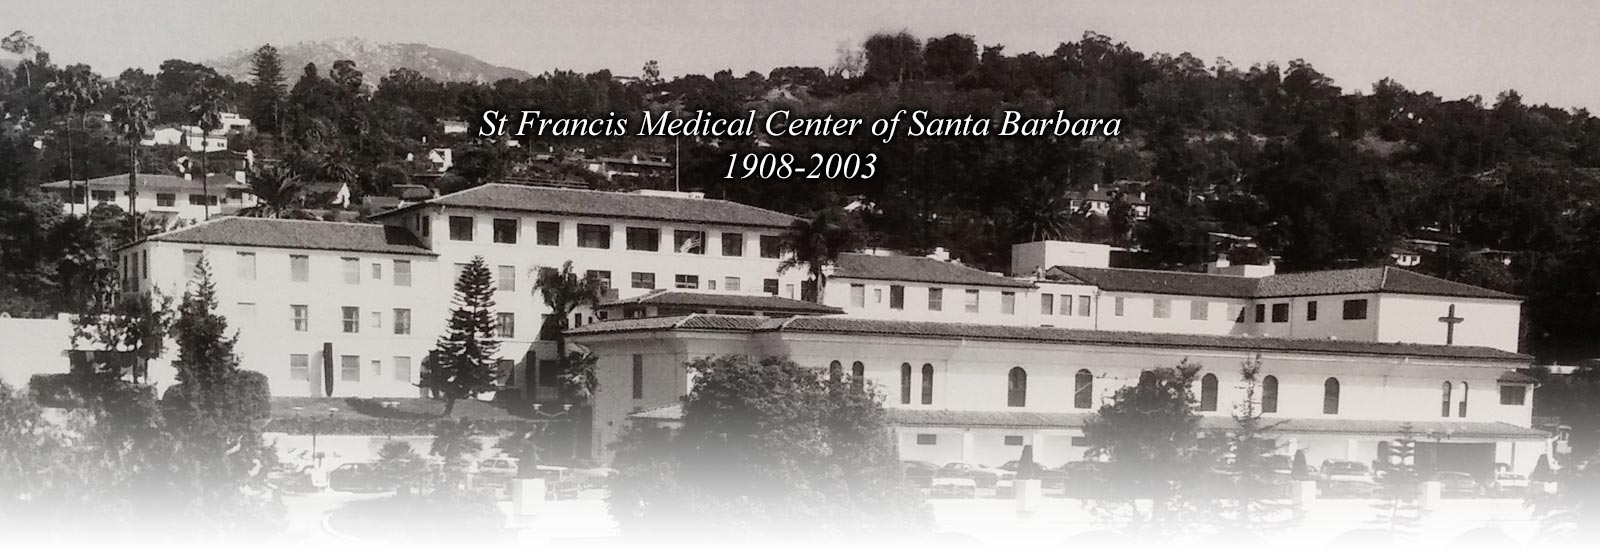 Old, archival photo of St. Francis Medical Center of Santa Barbara, caption read